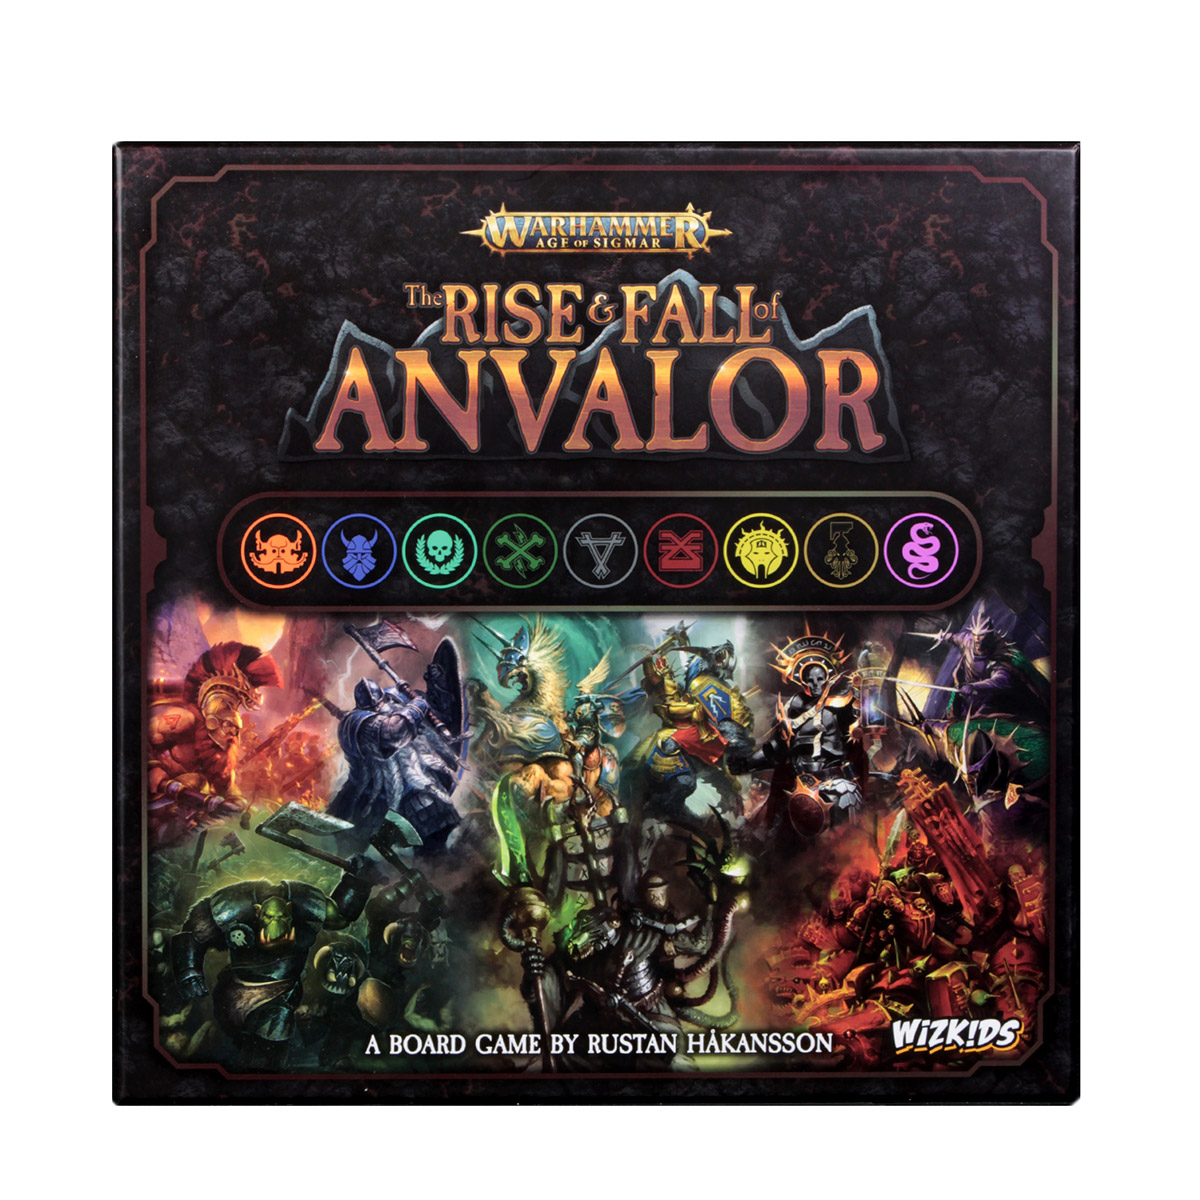 Warhammer: Age of Sigmar: Rise & Fall of Anvalor | WizKids